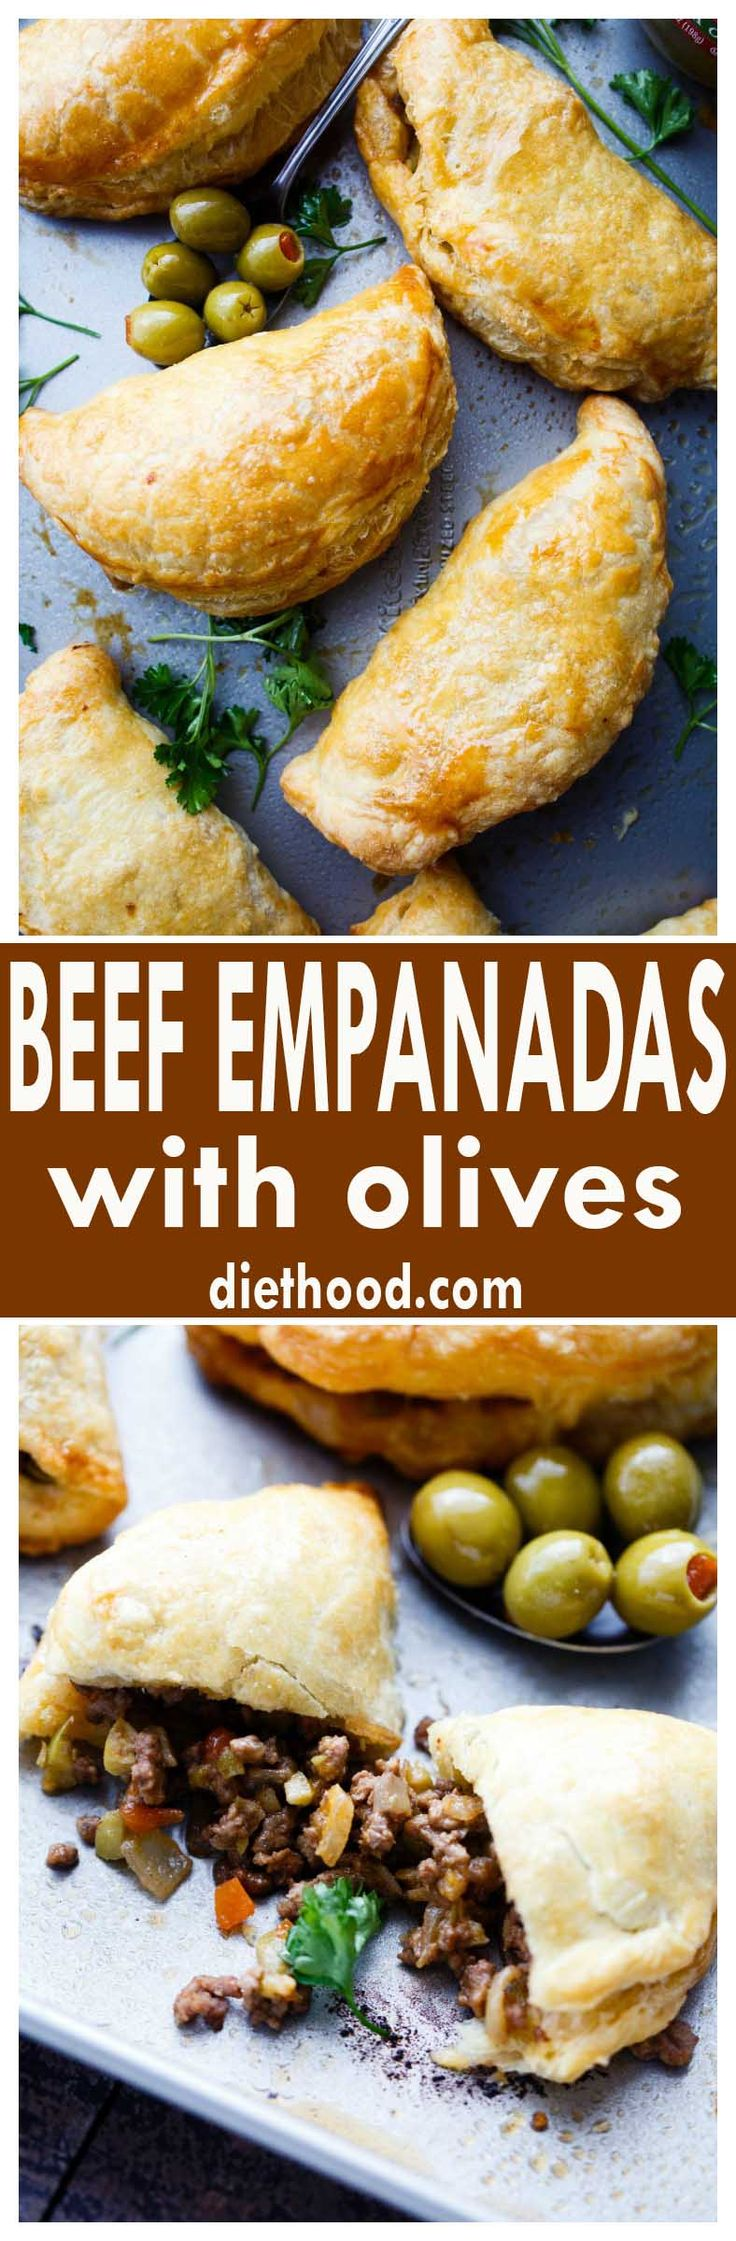 Beef Empanadas with Olives - Made with puff pastry dough and filled with an incredible beef and olives mixture, these empanadas are quick to prepare and they're absolutely delicious!